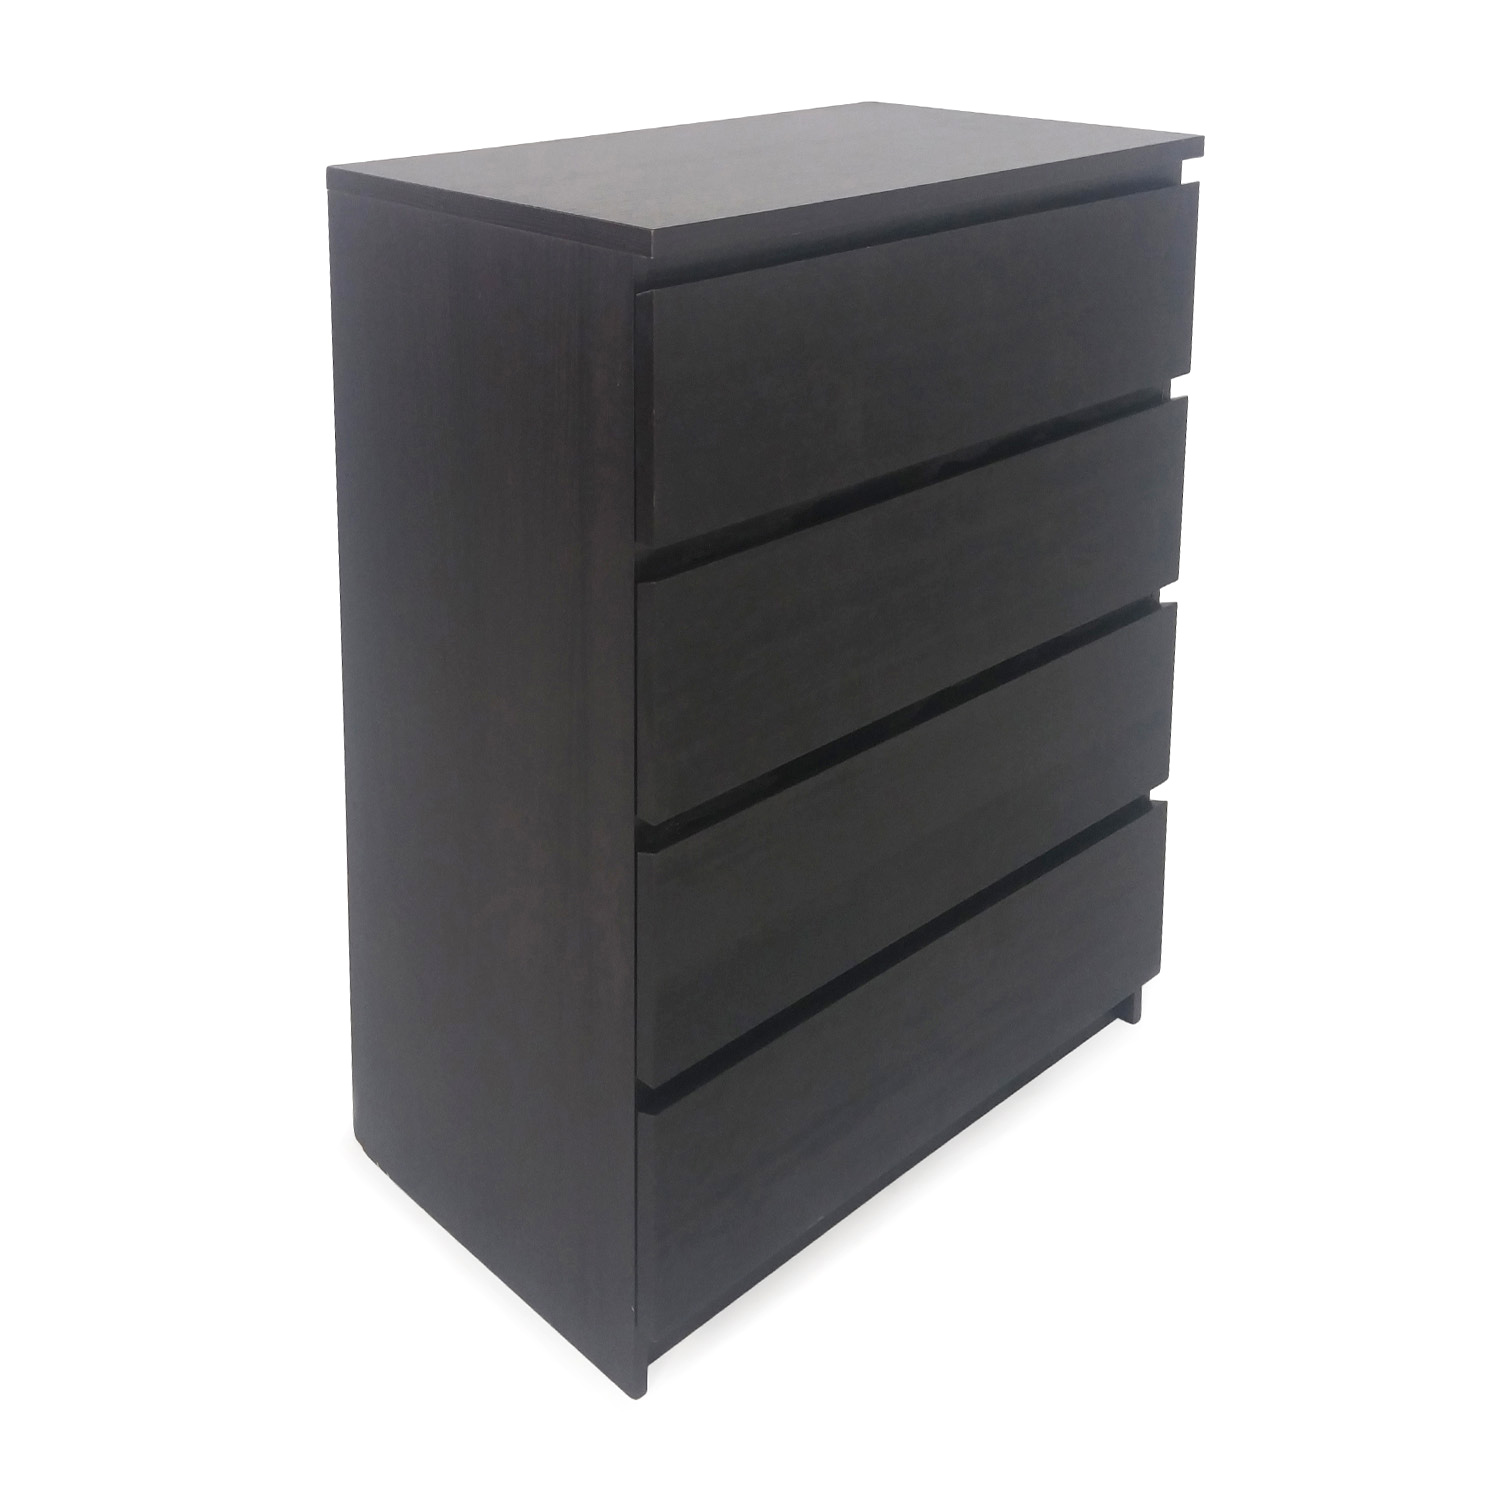 Ikea Malm 4 Drawer Dresser On